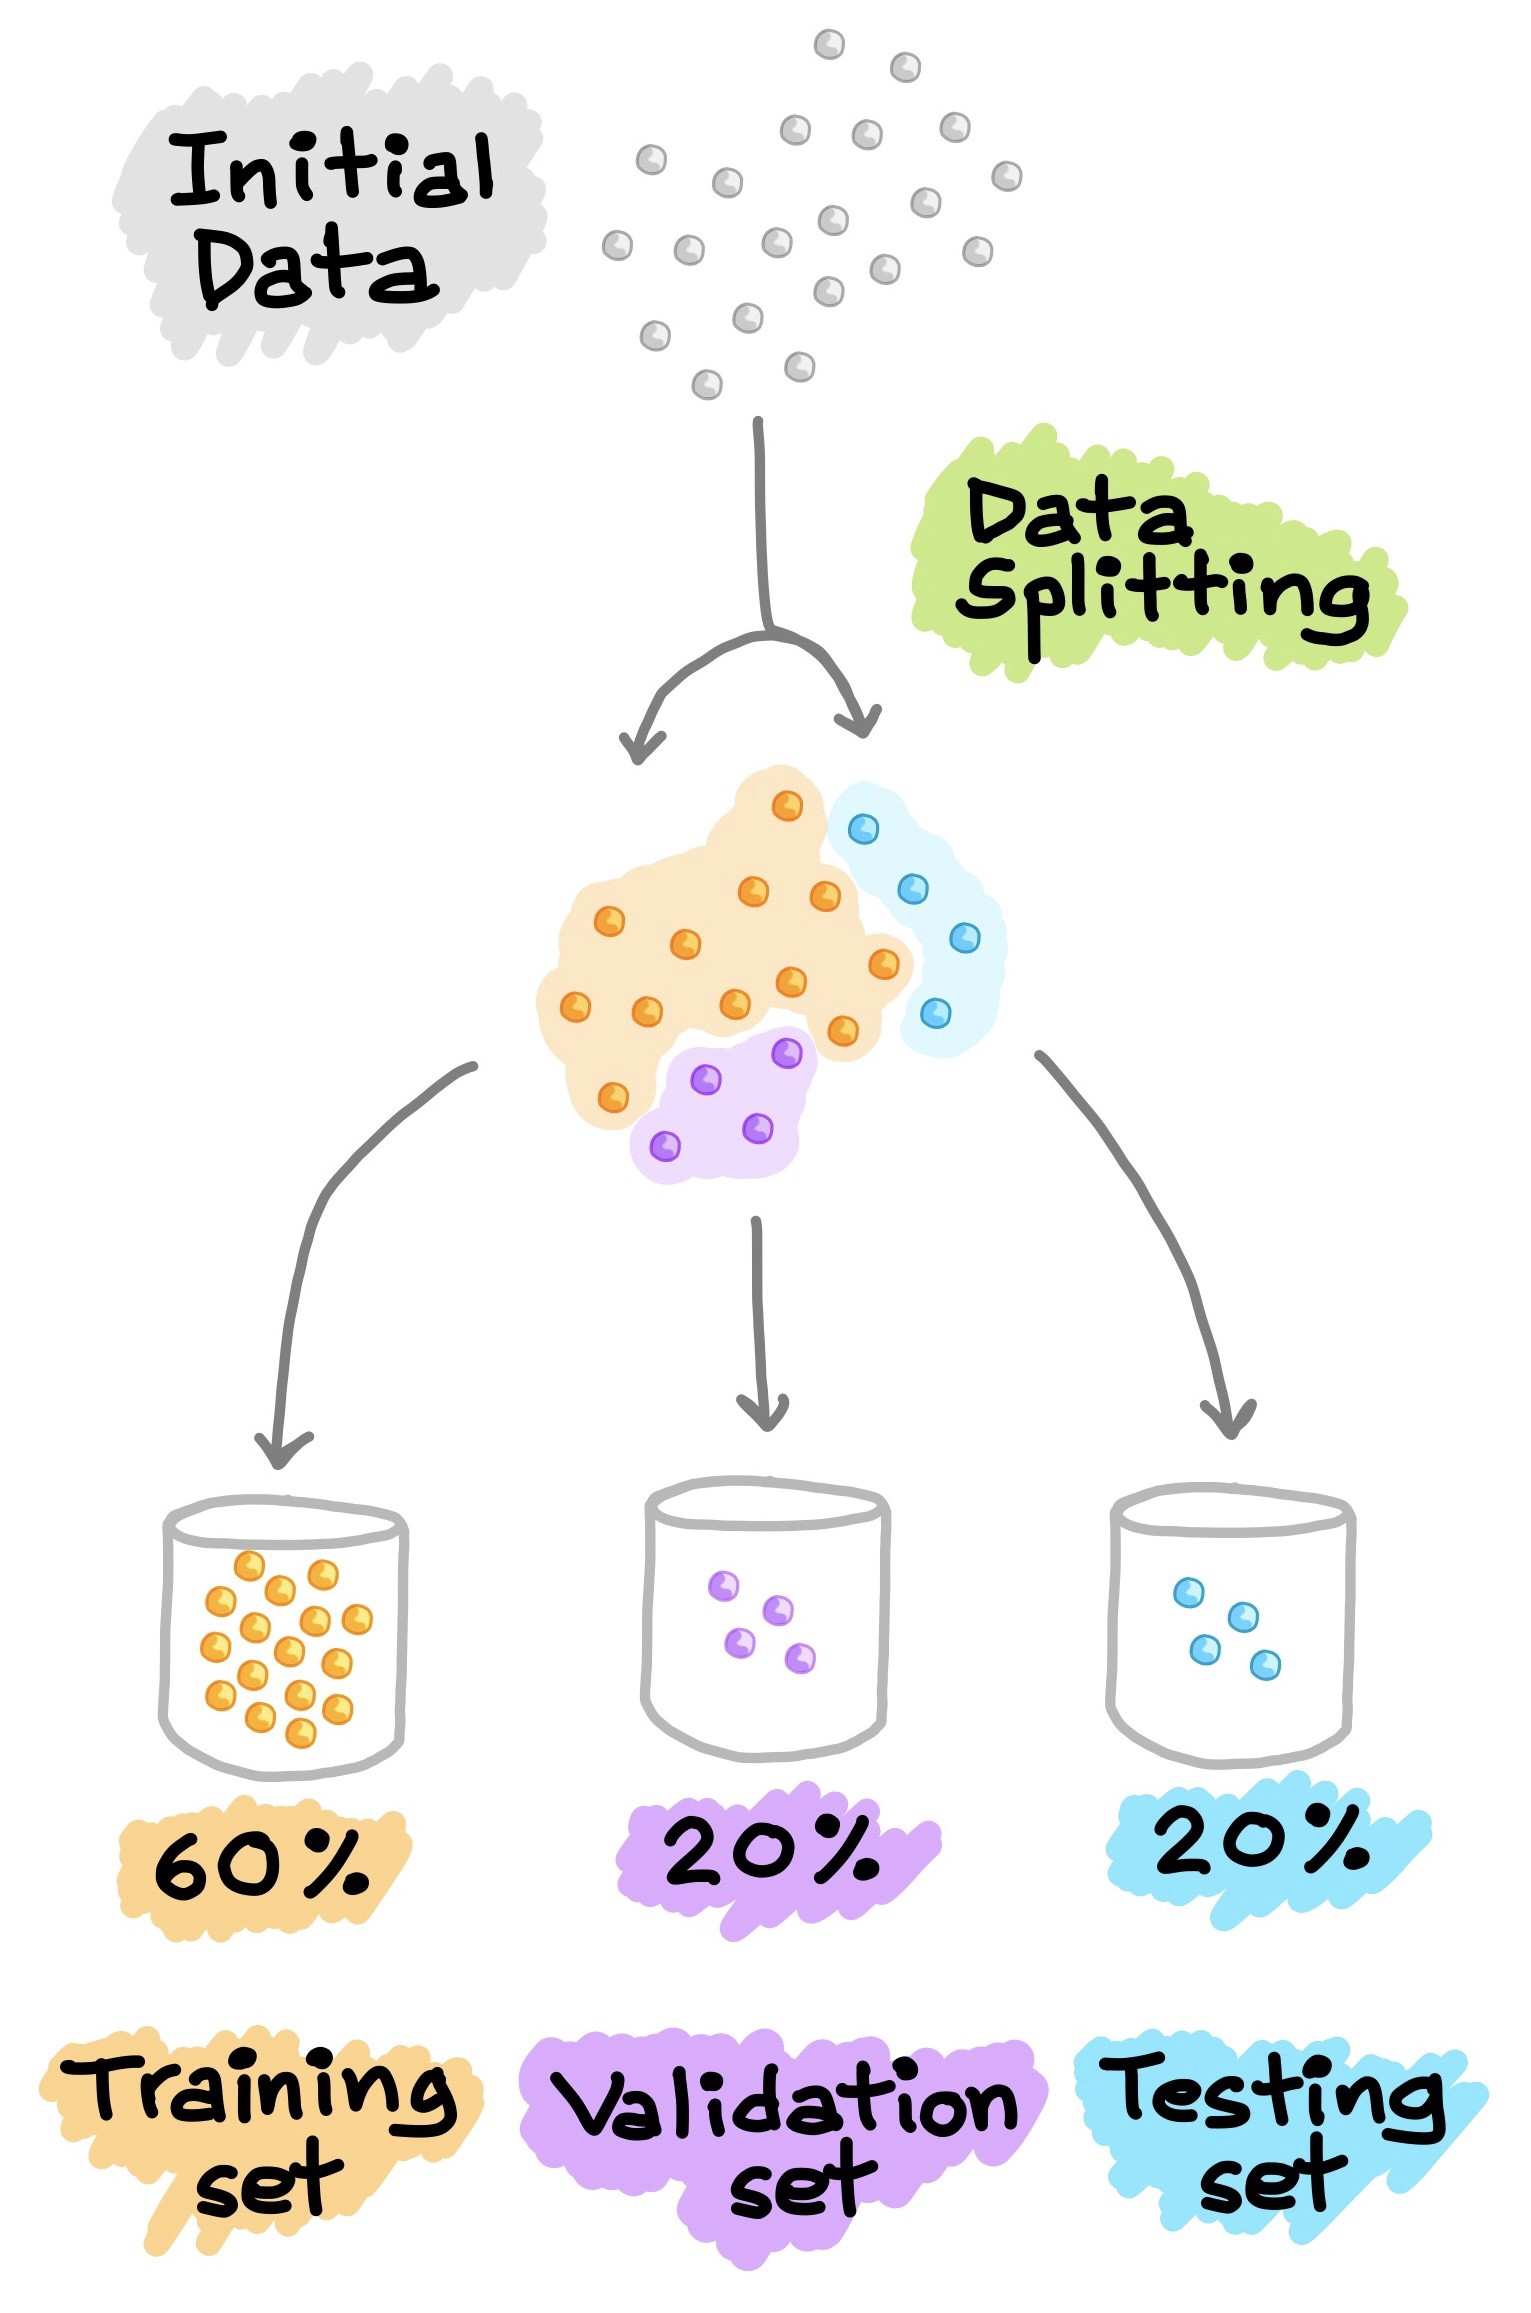 How to Build a Machine Learning Model